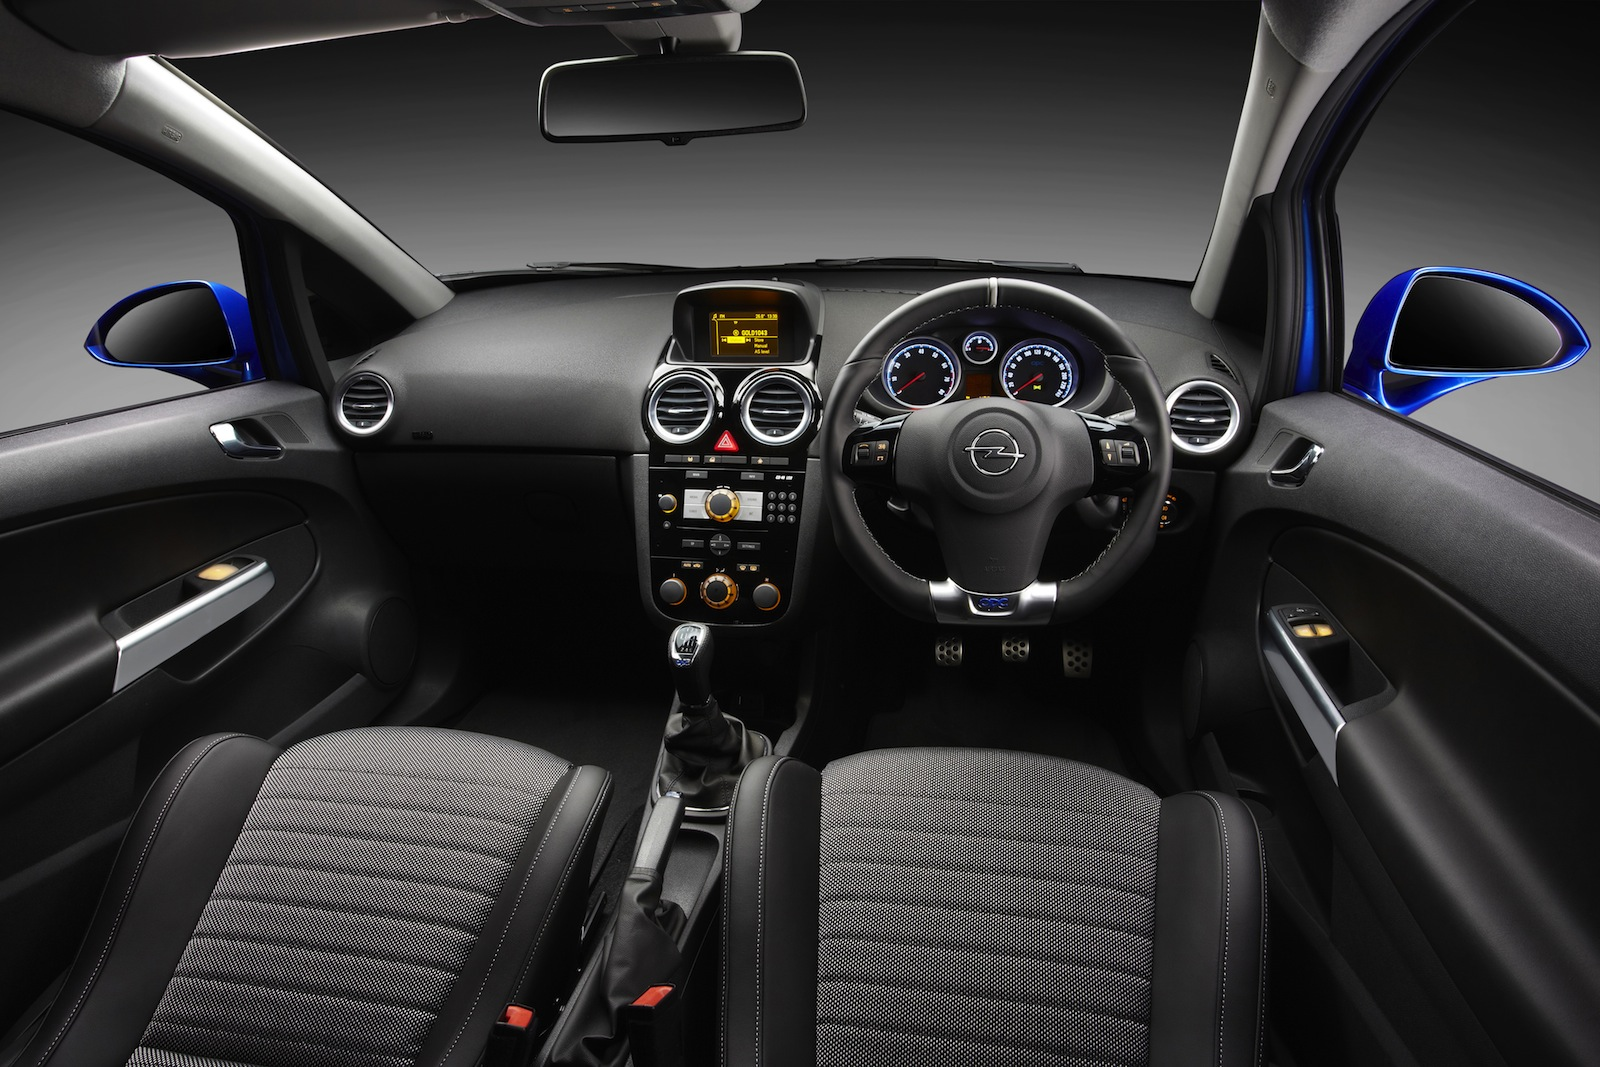 Opel Insignia Corsa Opc Models Confirmed For 2013